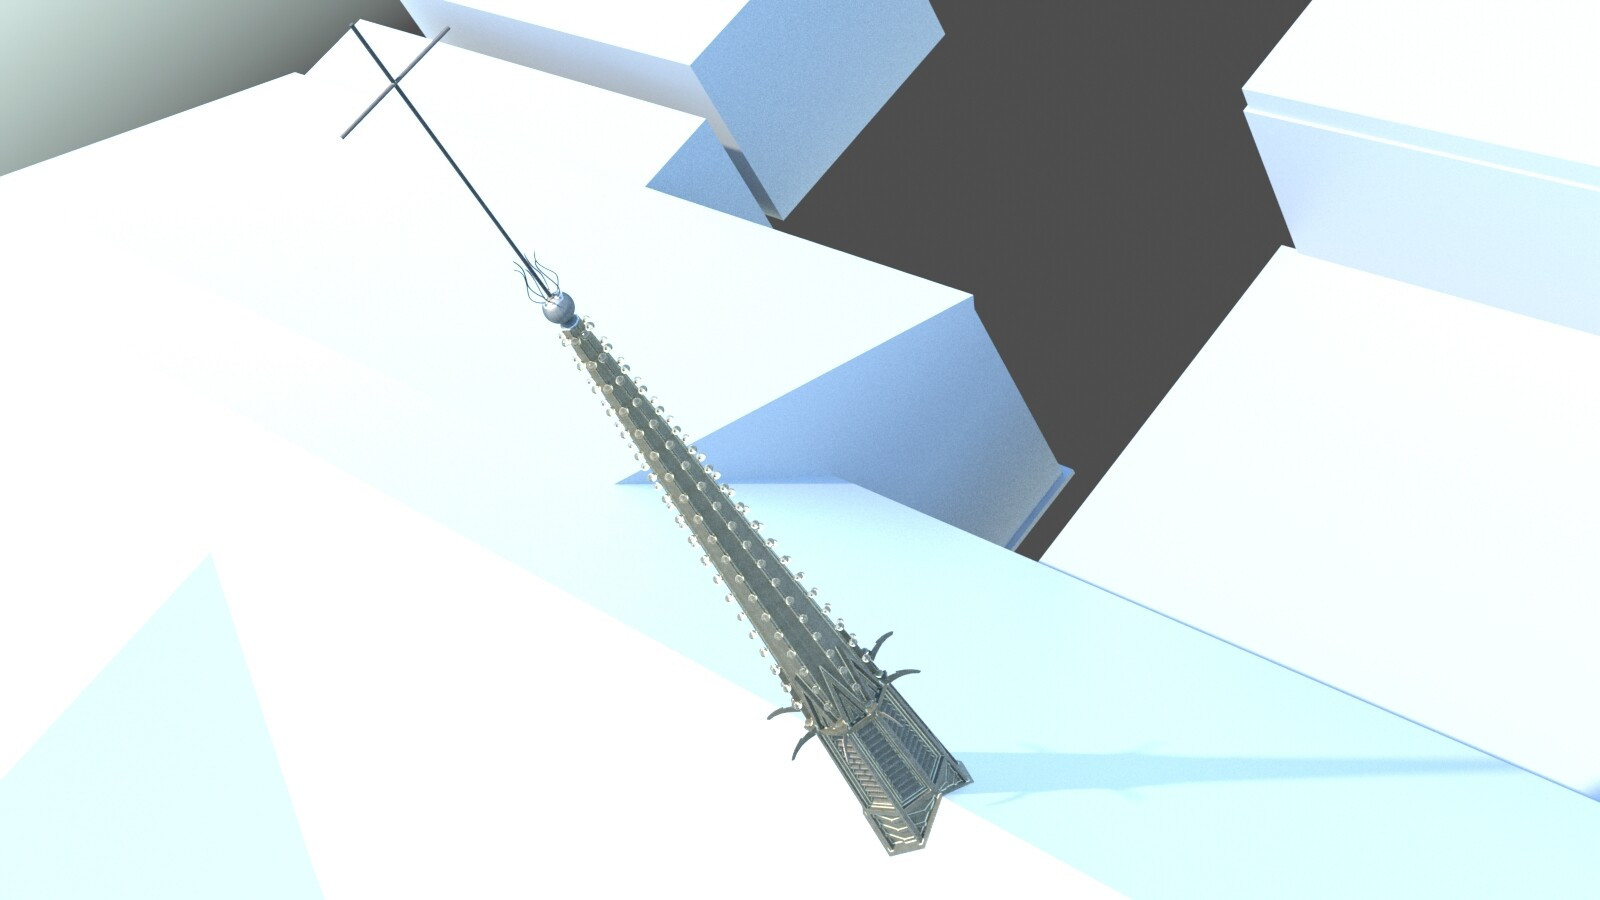 Old work - steeple emplaced in massing model